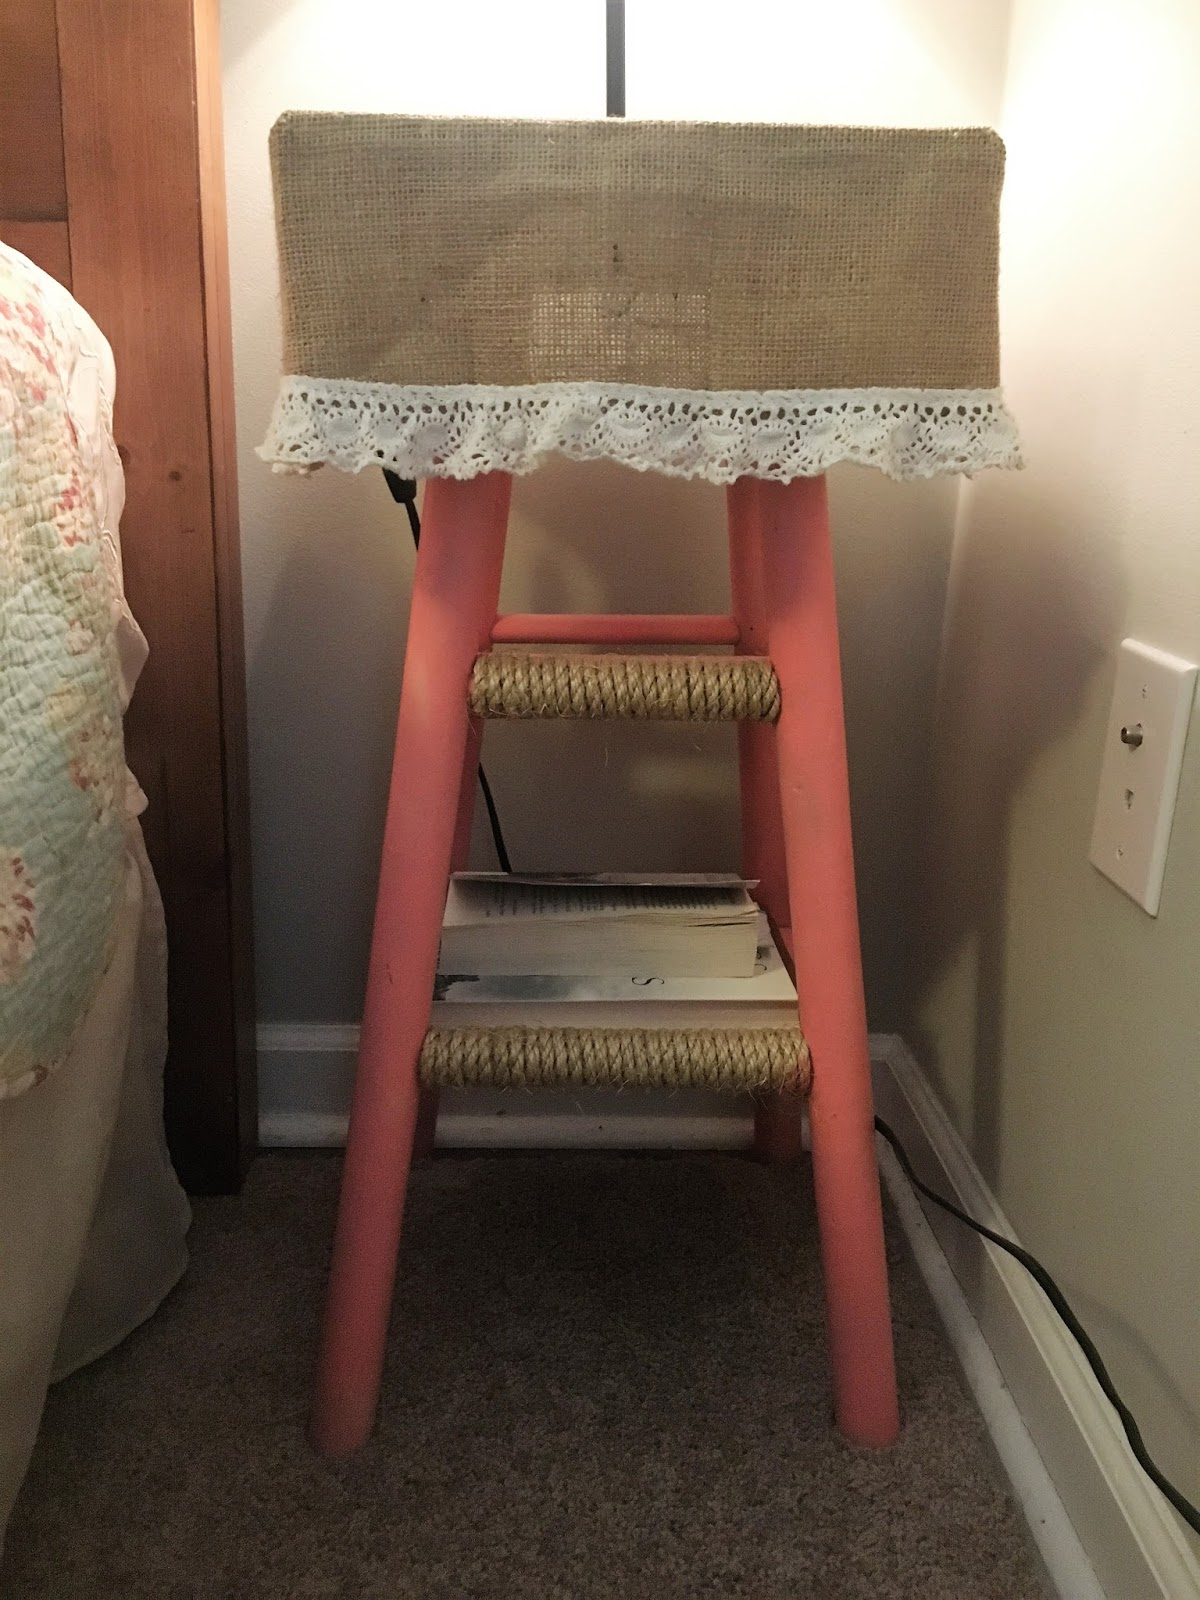 Stool Bedside Table: Our DIY Bedside Table (from A Bar Stool